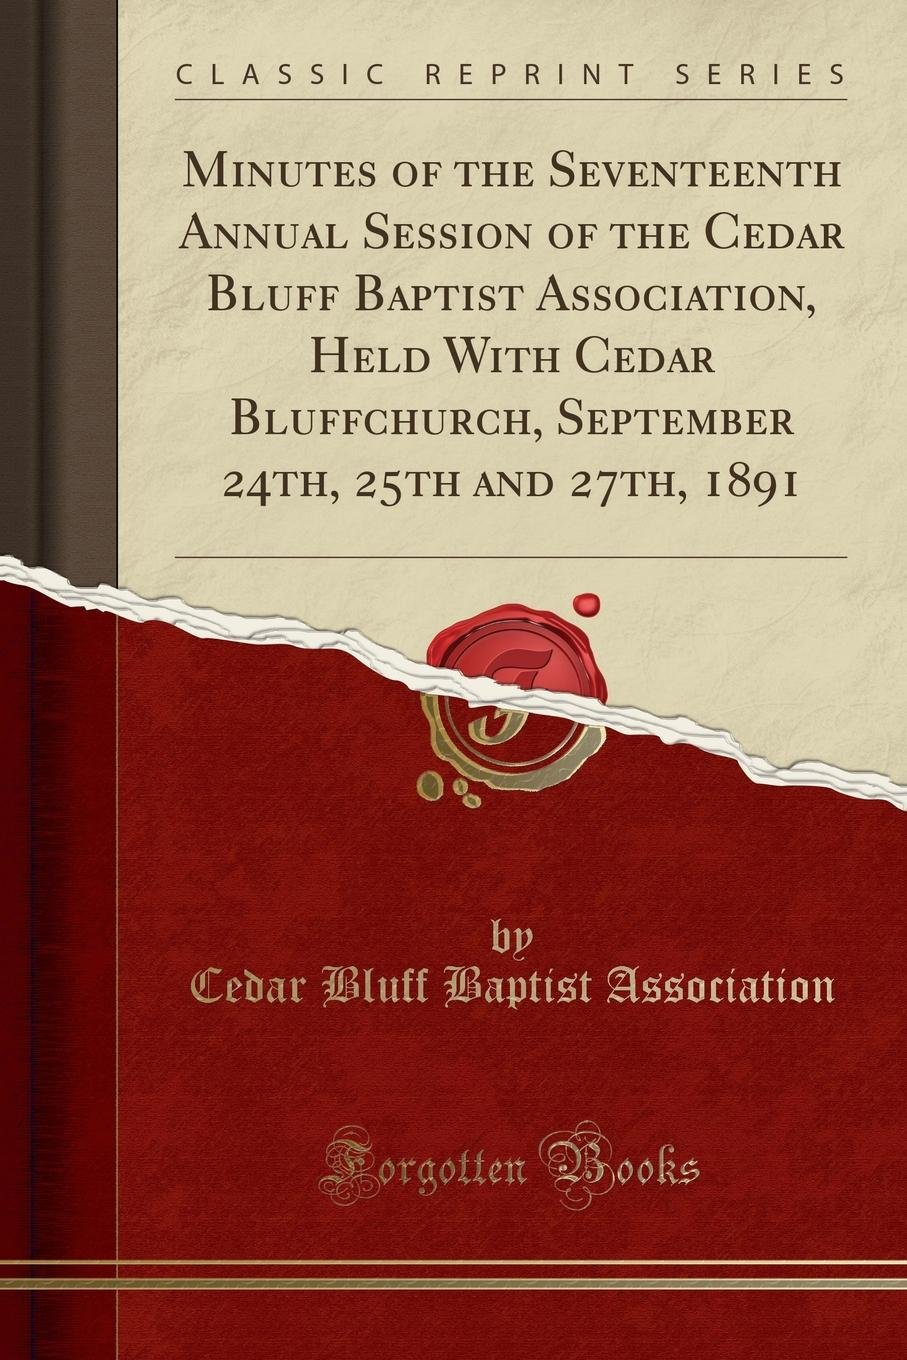 Minutes of the Seventeenth Annual Session of the Cedar Bluff Baptist Association, Held With Cedar Bluffchurch, September 24th, 25th and 27th, 1891 (Classic Reprint) ebook